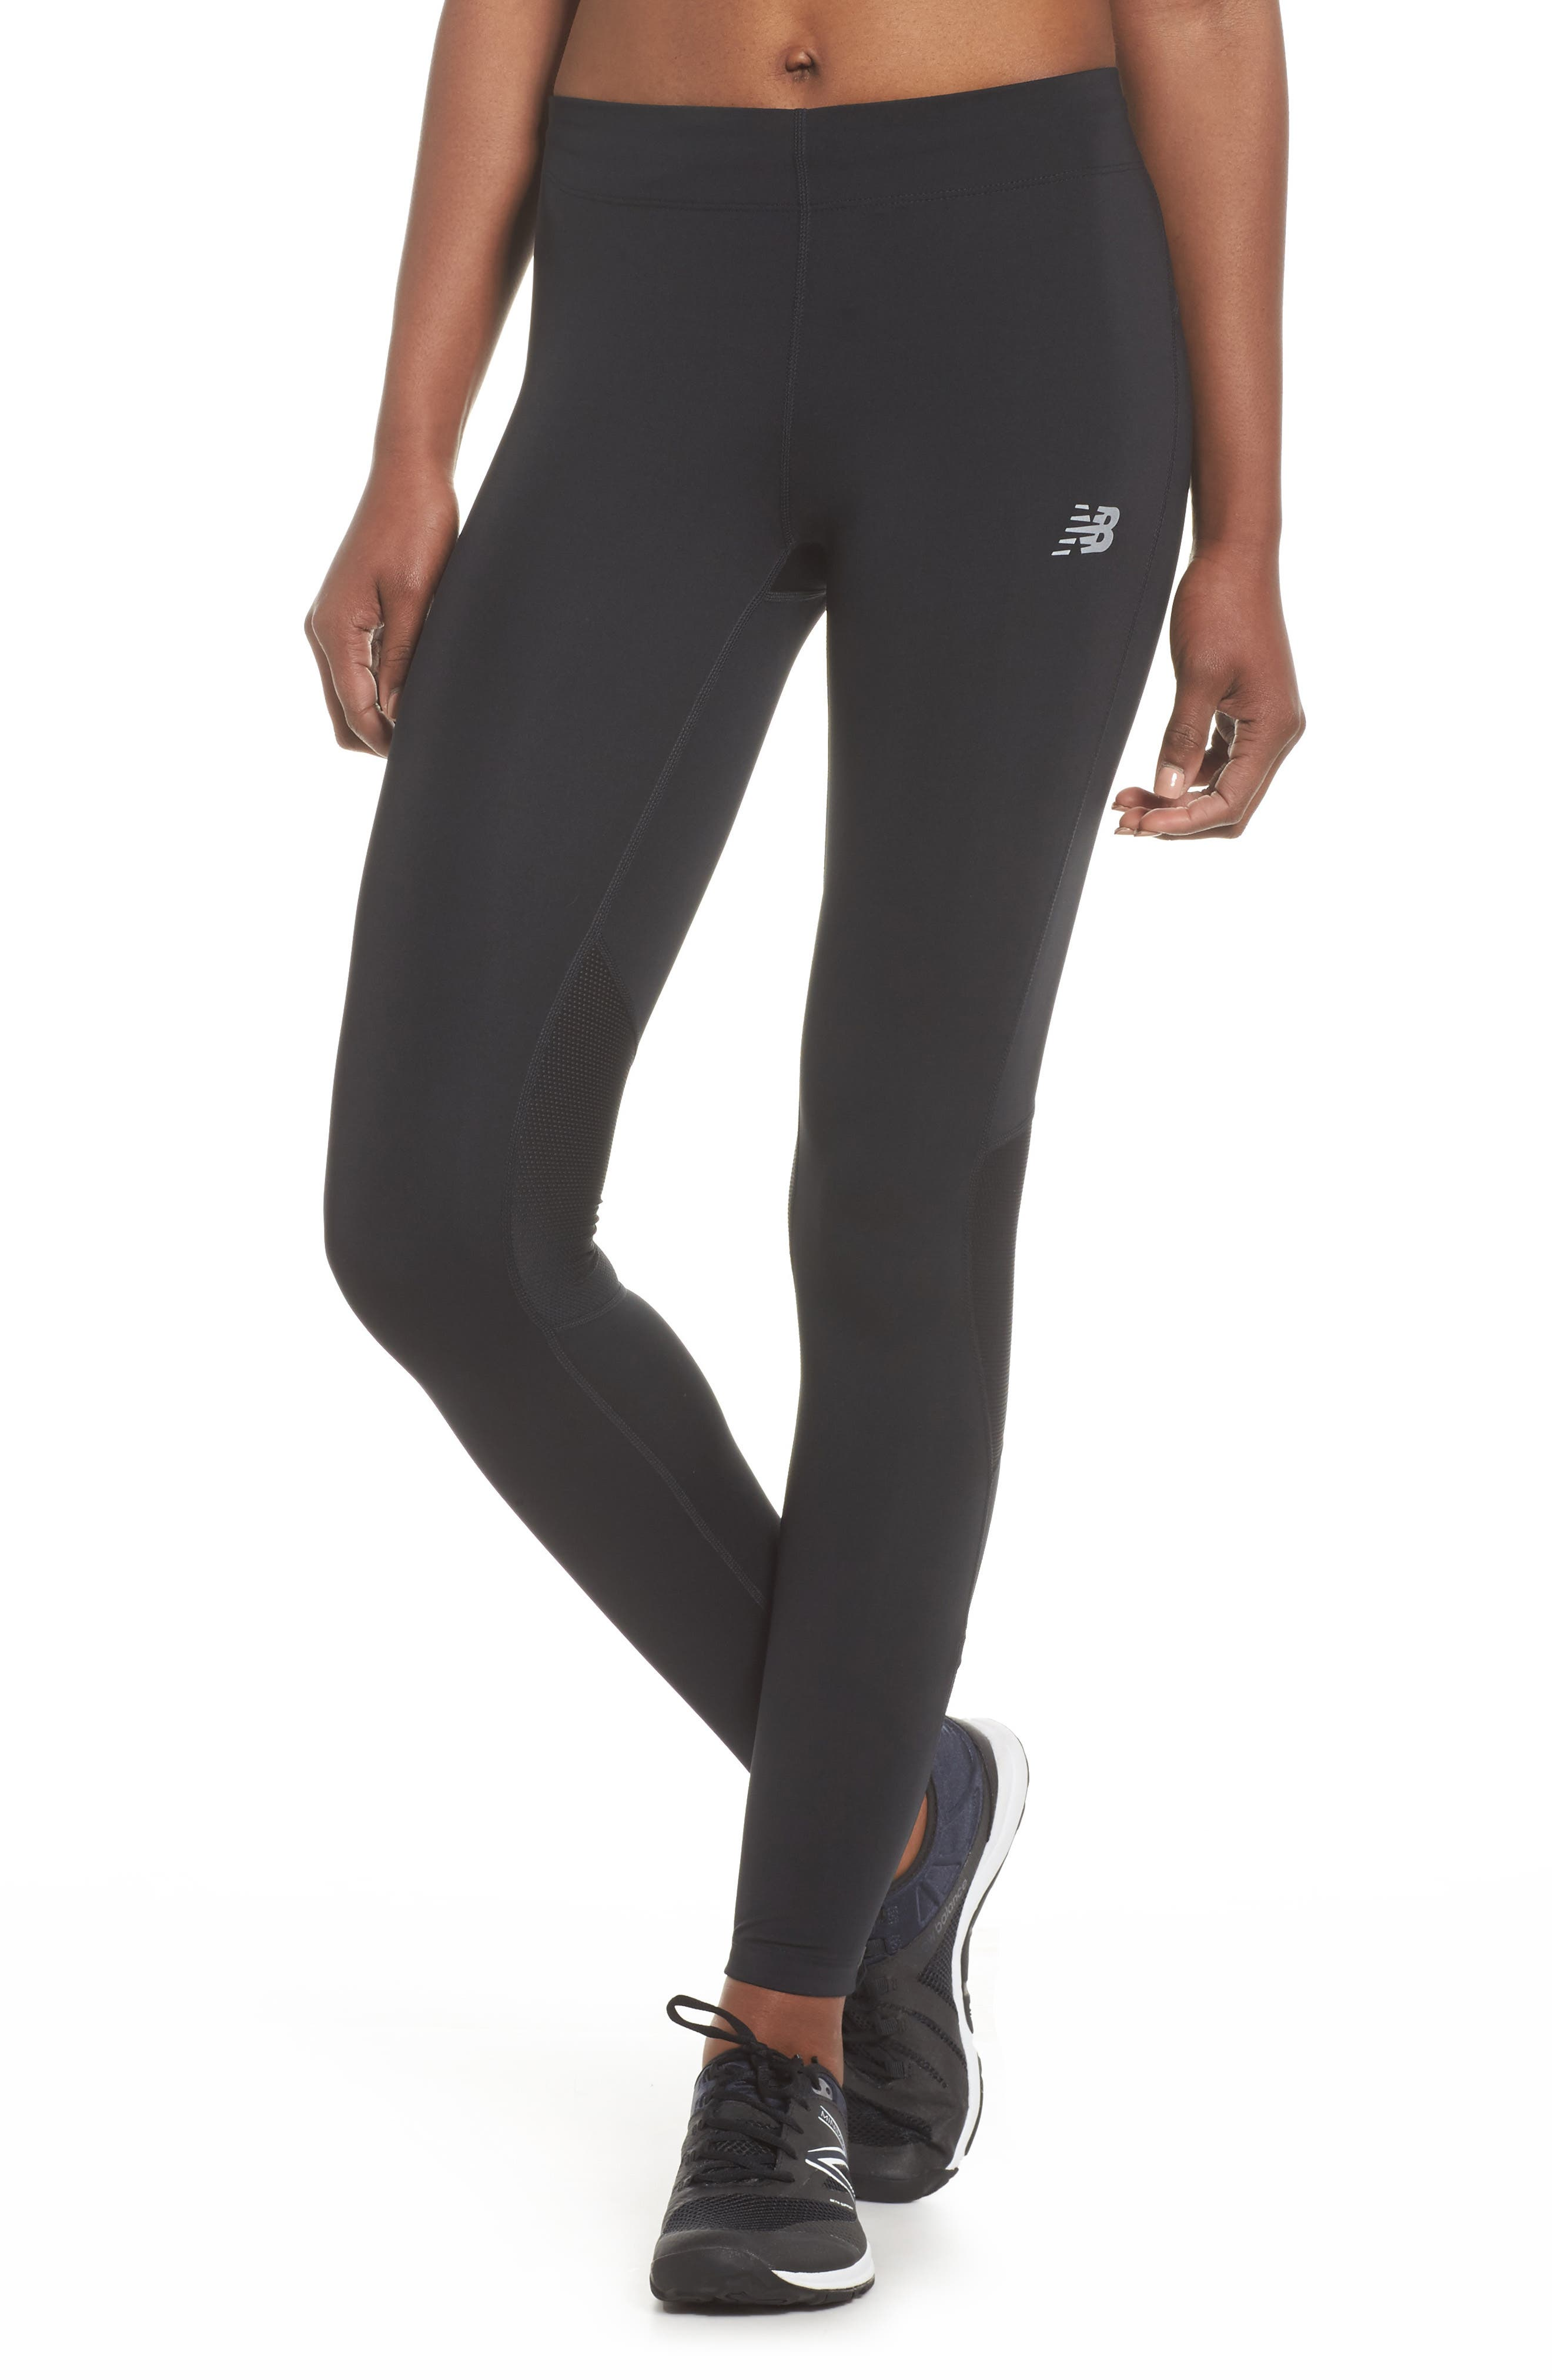 Impact Premium Running Tights,                             Main thumbnail 1, color,                             001